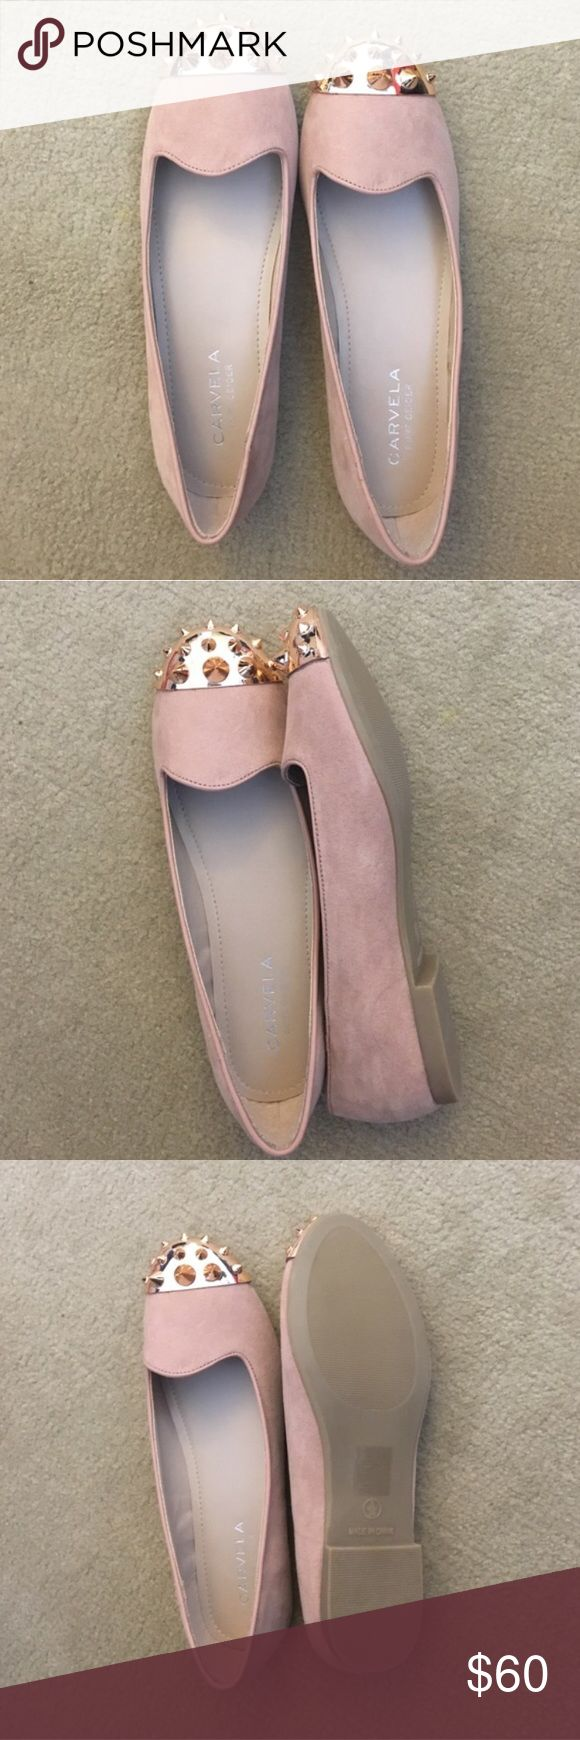 Pink suede studded loafers SO CUTE. never worn, perfect condition. Brand is Carvela but I am tagging as Jeffrey Campbell for exposure (brand/look is very similar) Jeffrey Campbell Shoes Flats & Loafers